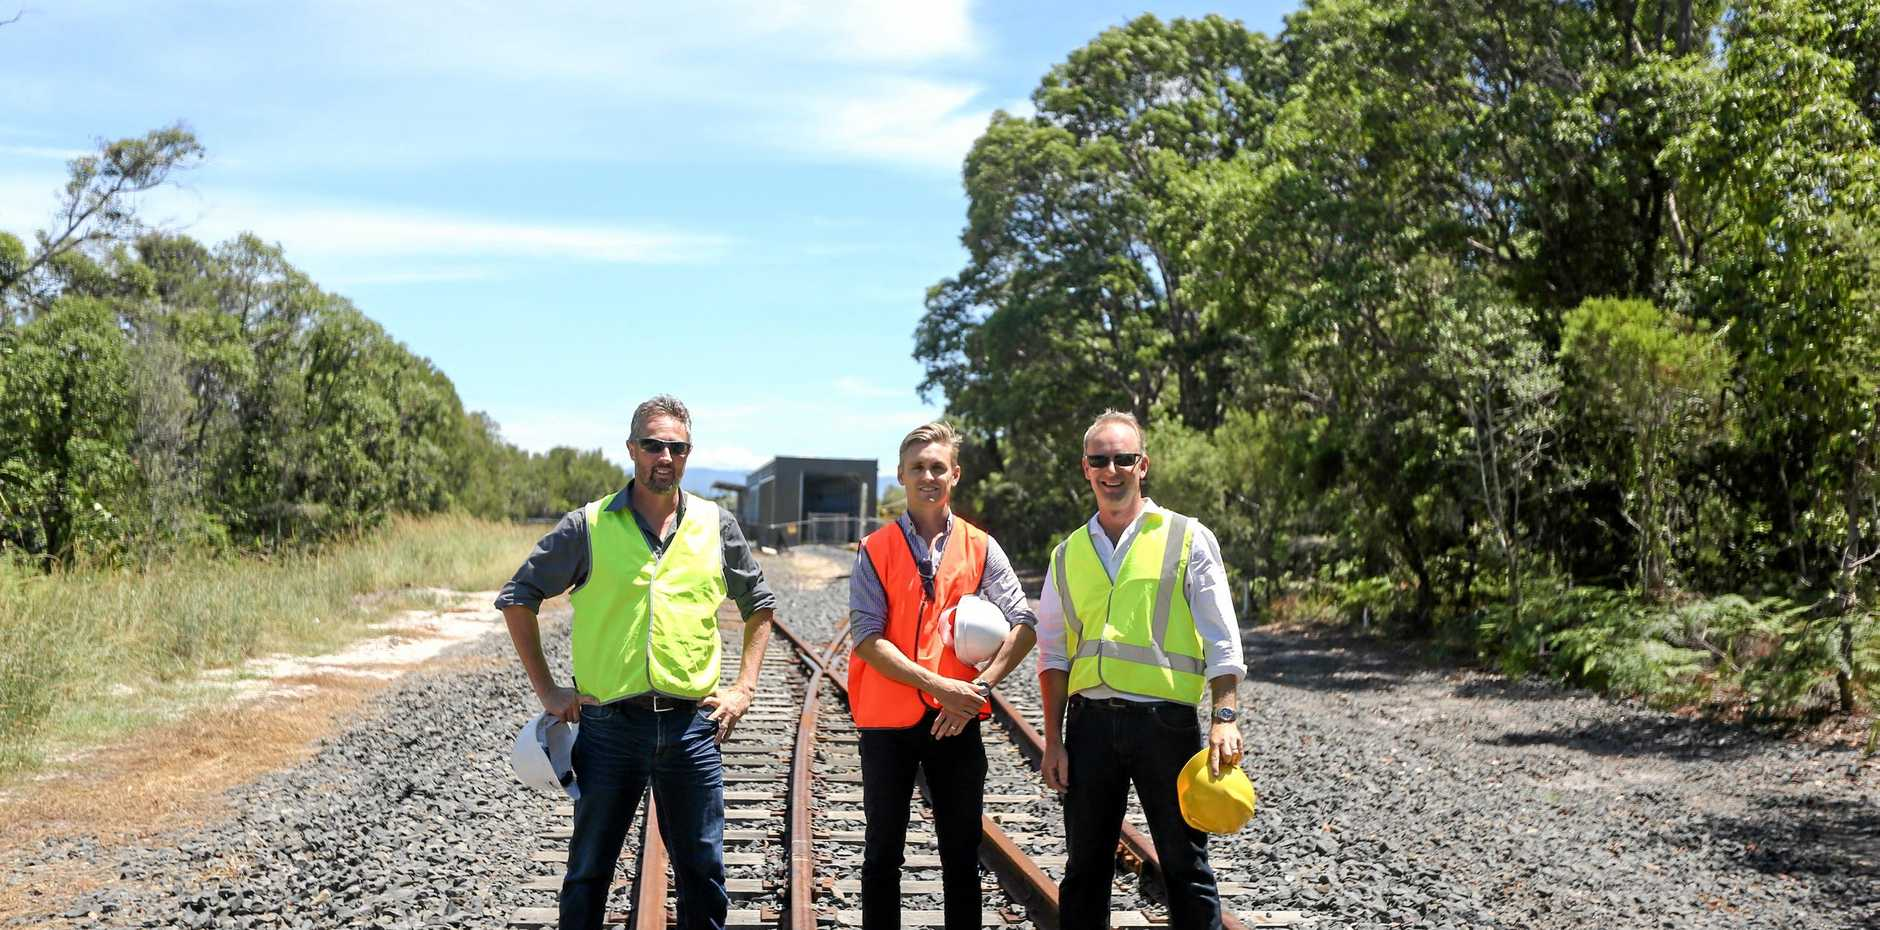 The solar train is coming to Byron Bay.